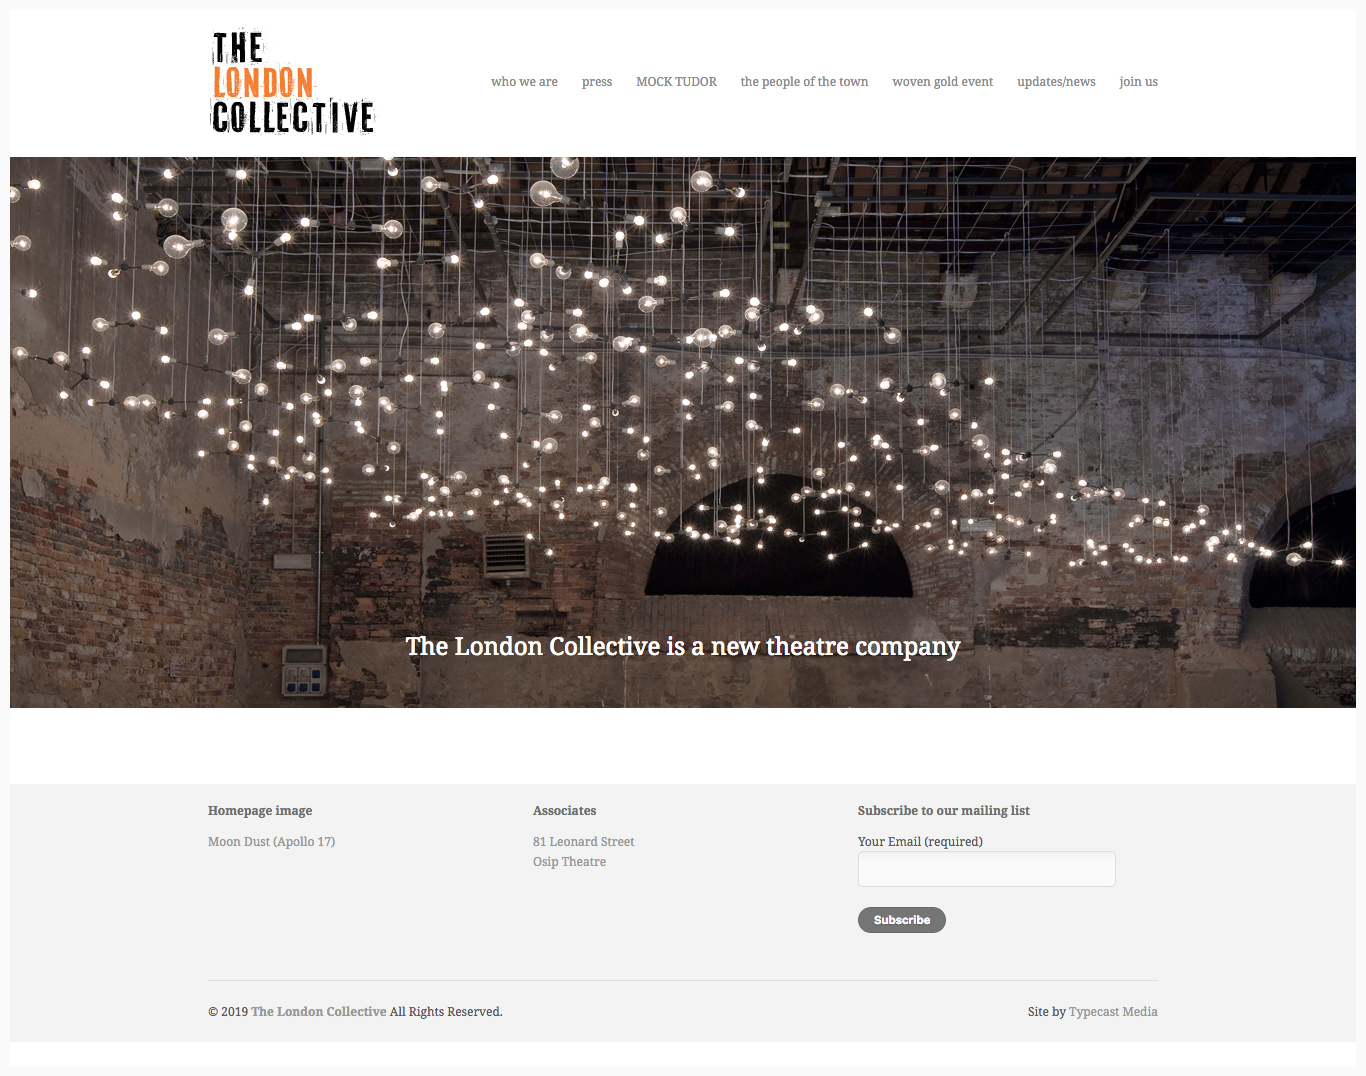 The London Collective